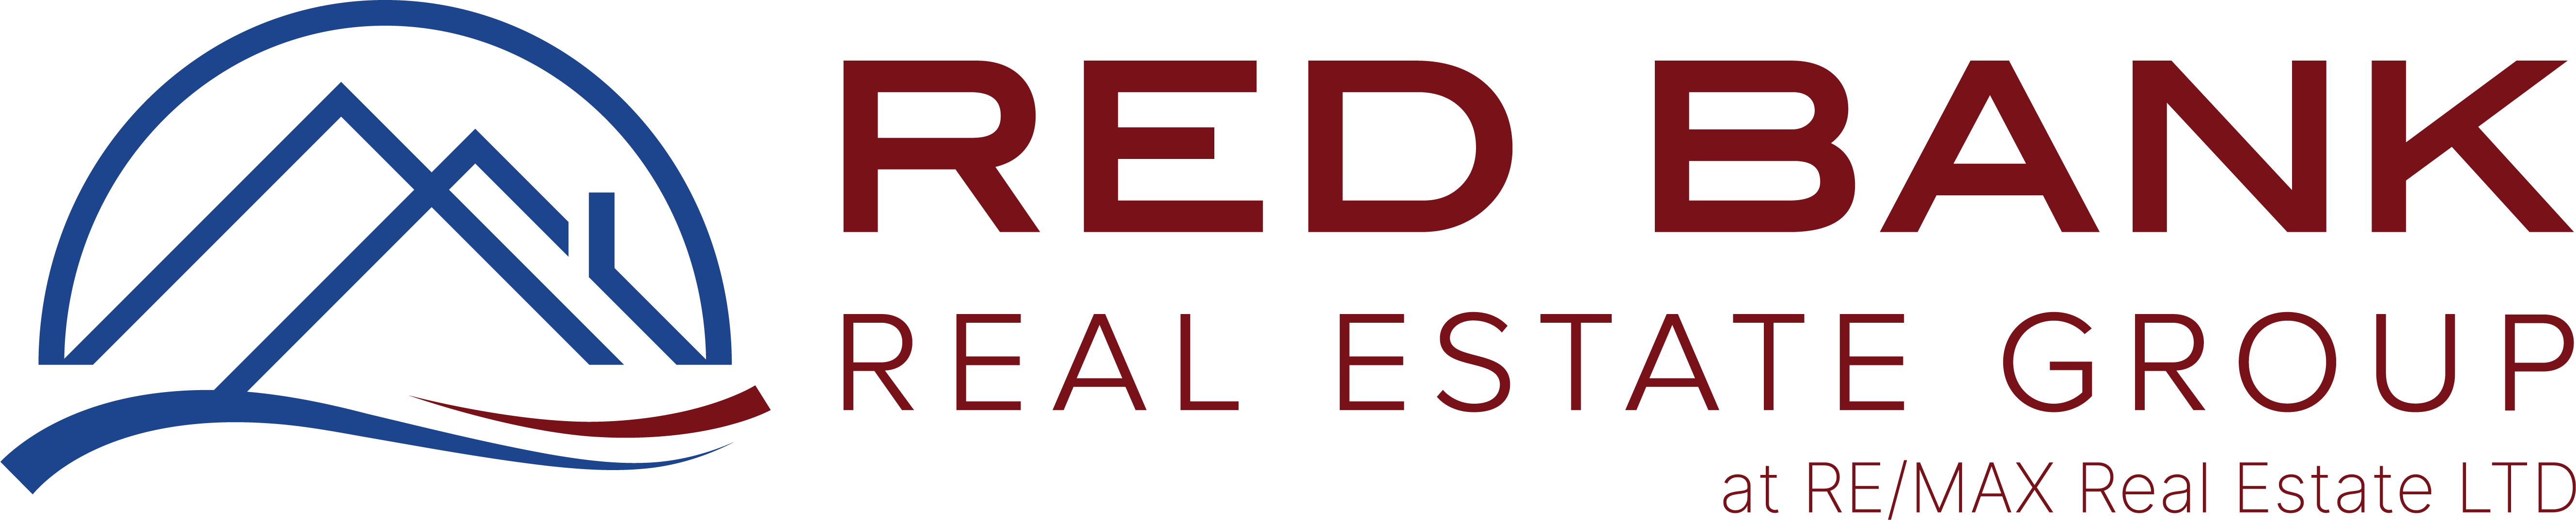 Red Bank Real Estate Group of RE/MAX Real Estate LTD.,